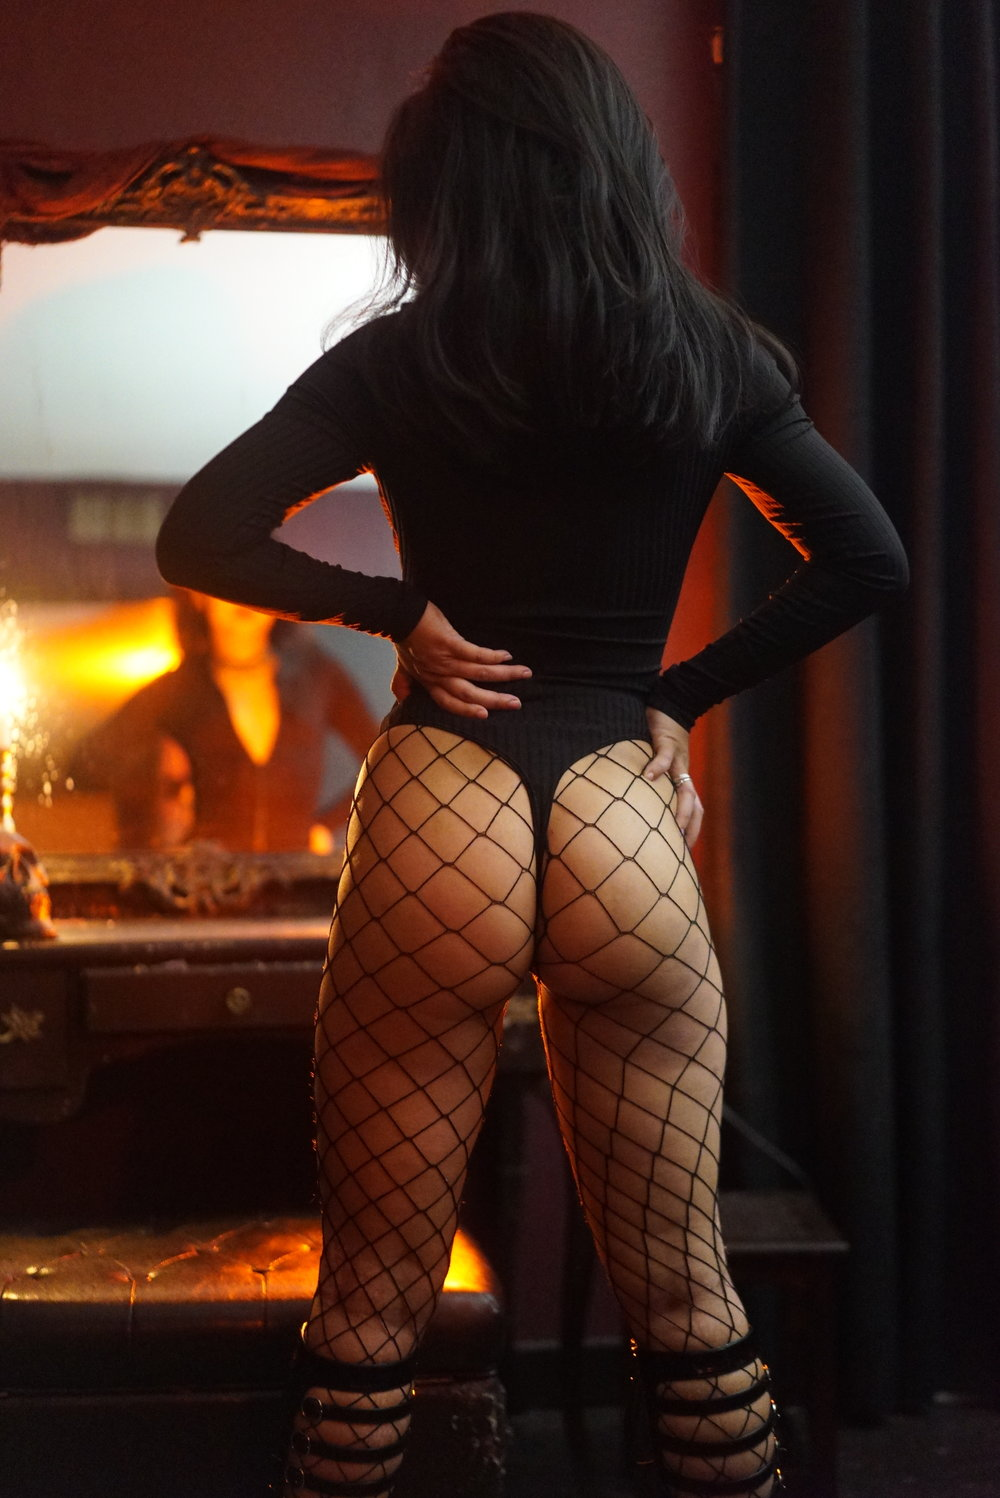 Get on your knees. Beg to stare up at New York dominatrix Empress Wu's beautiful ass in fishnets